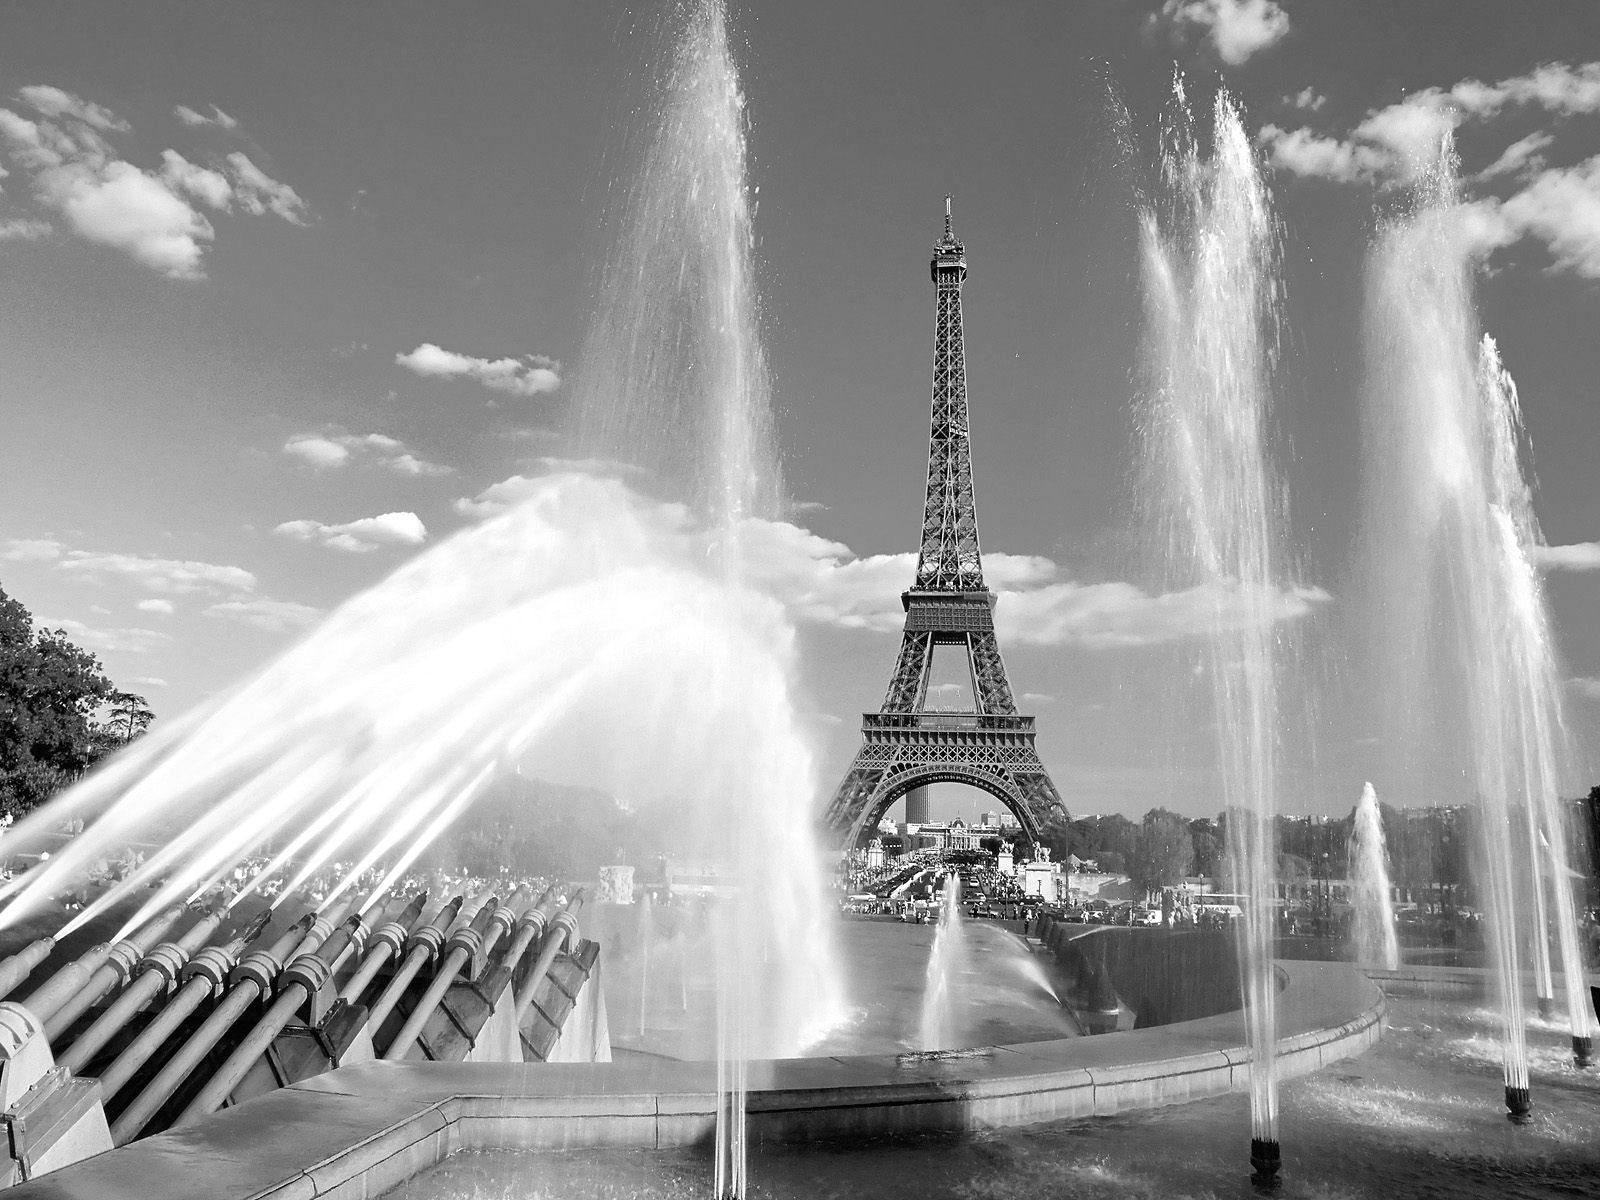 Eiffel Tower and water fountains Black and white Photo